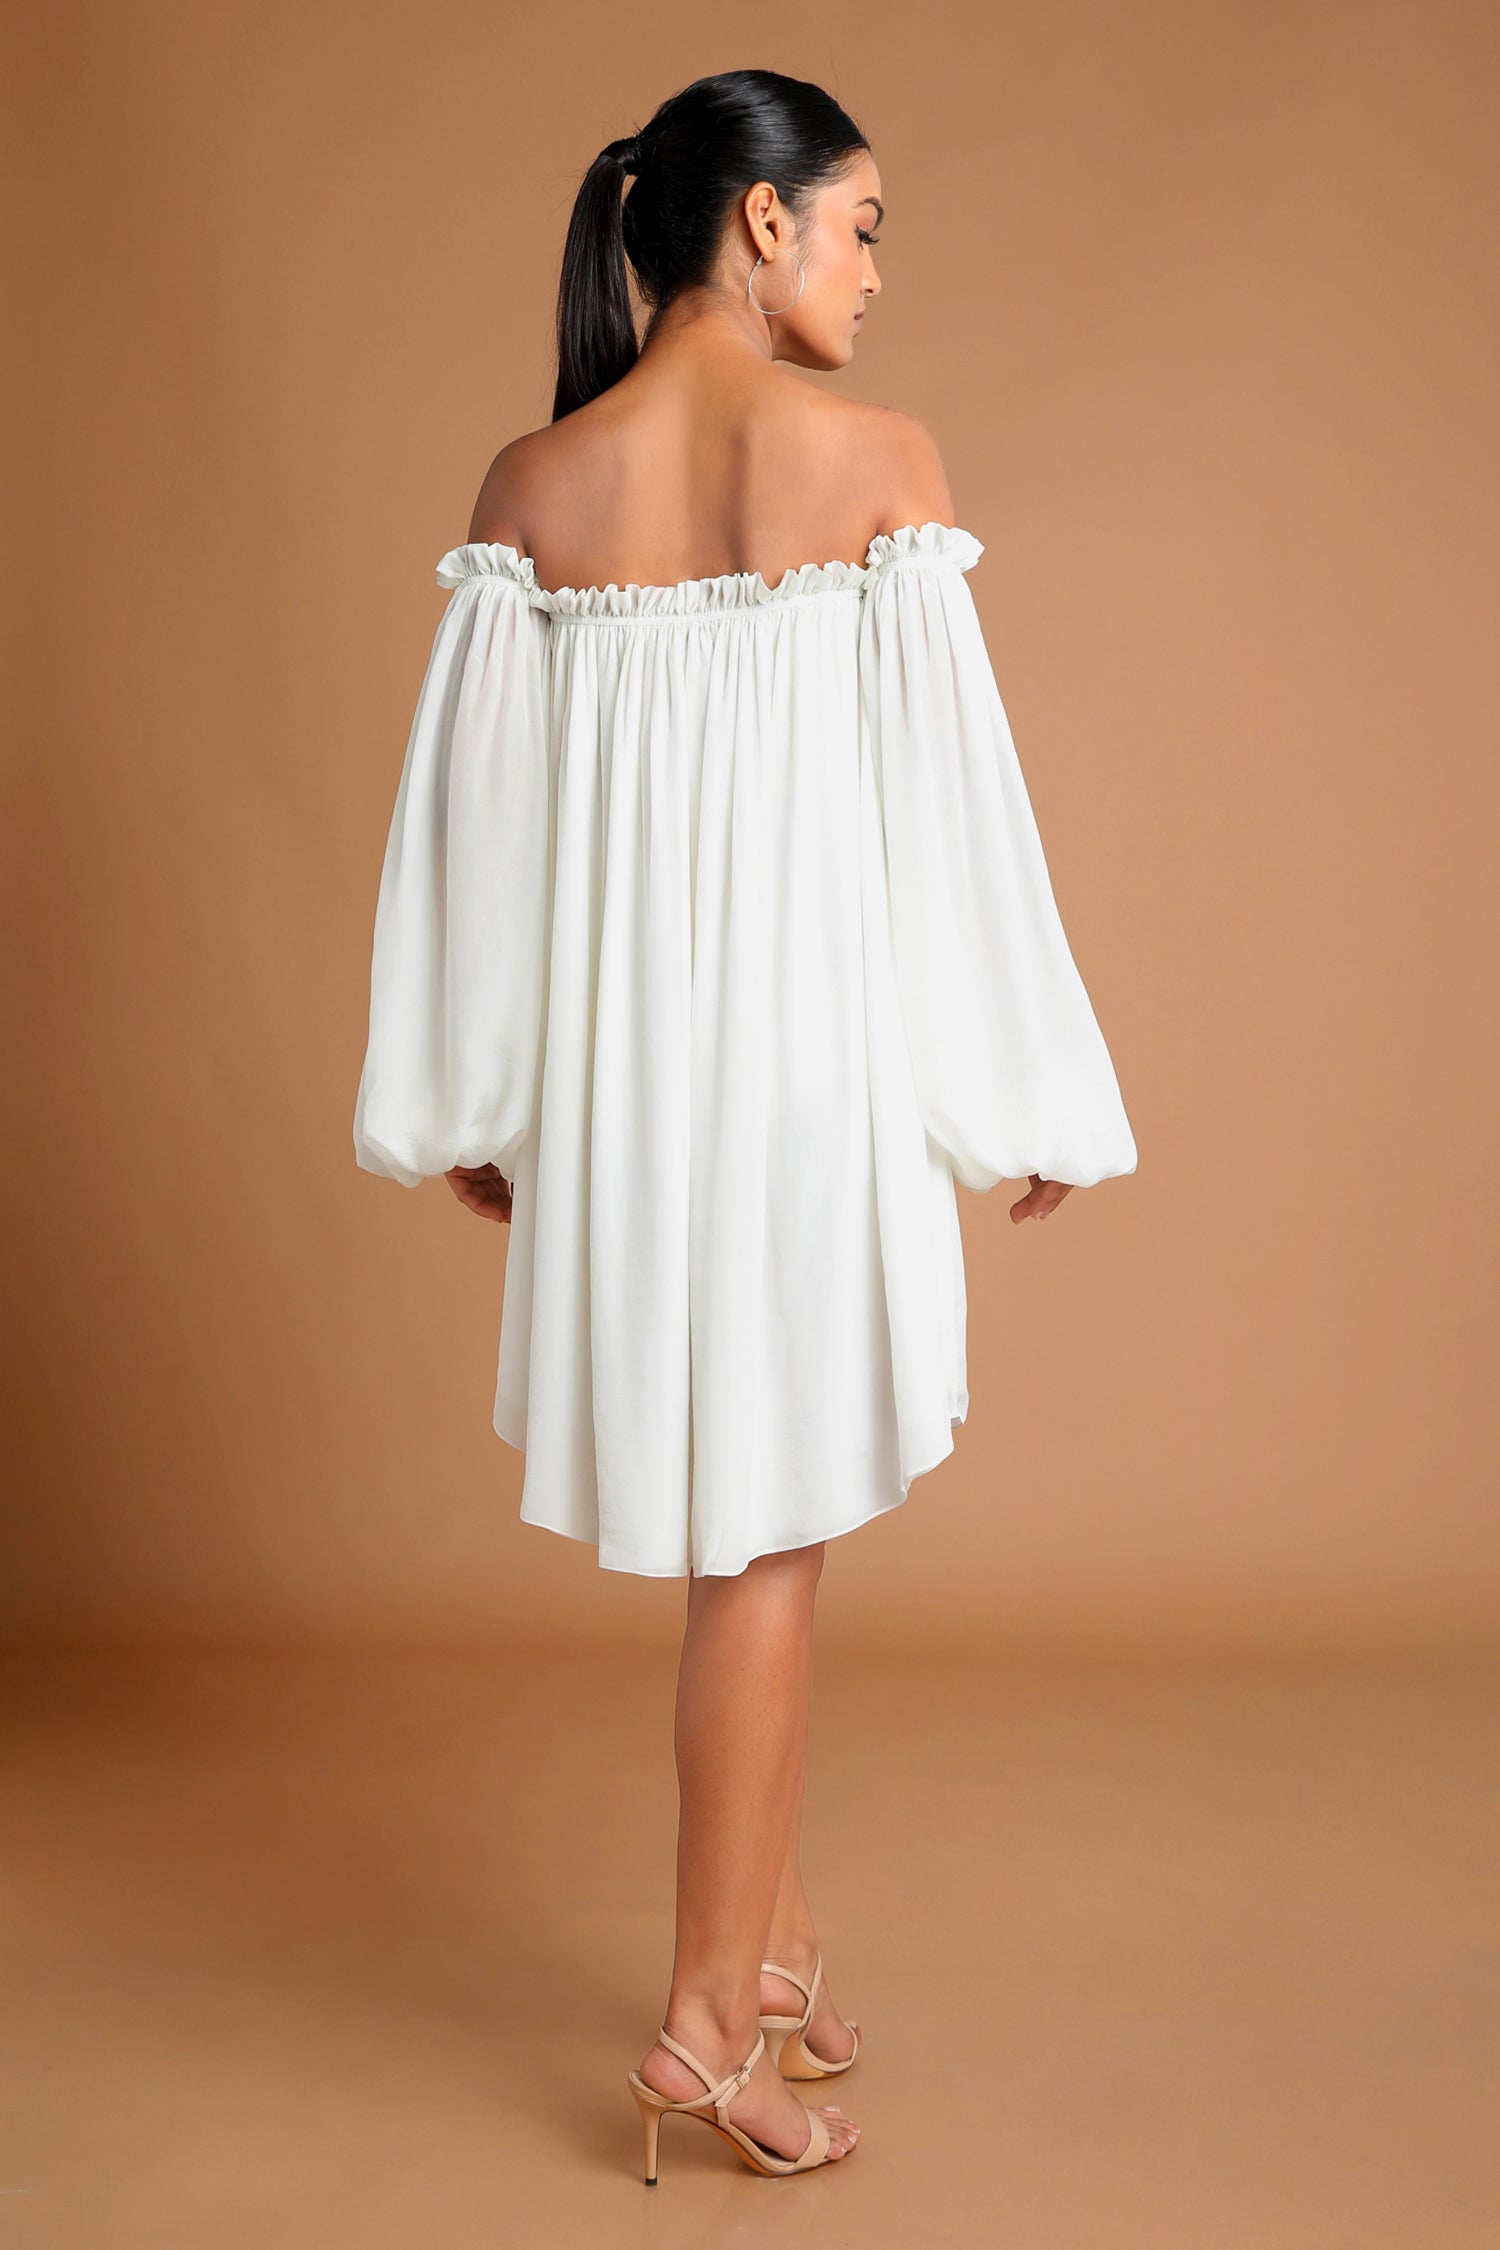 Summer White Off-Shoulder Dress| KYNAH x Masaba